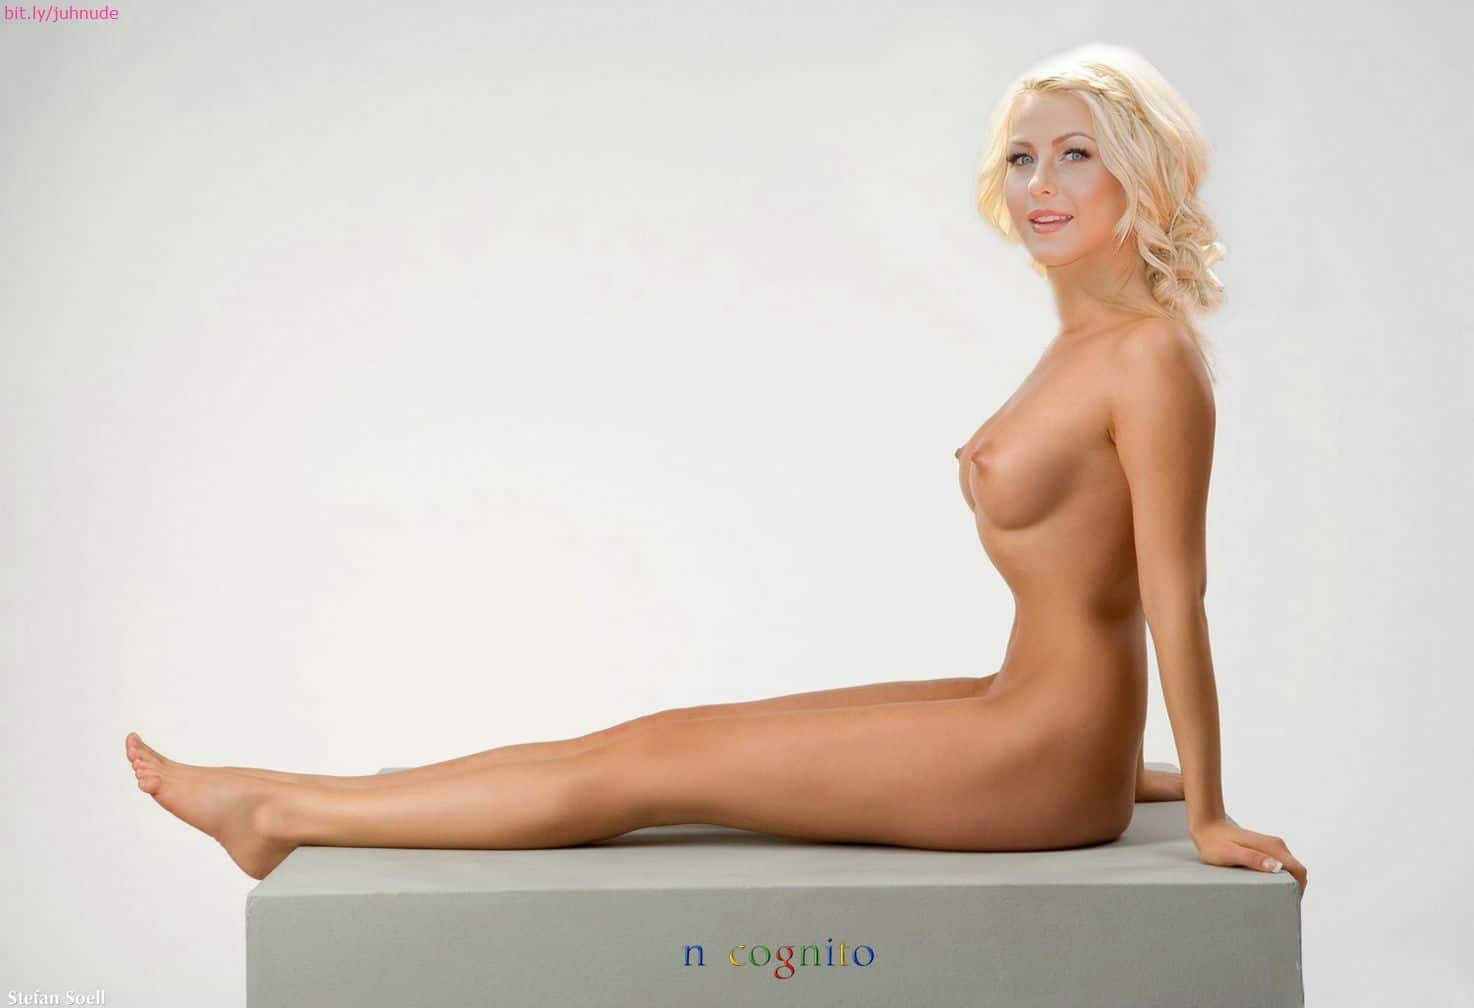 Julianne hough naked commit